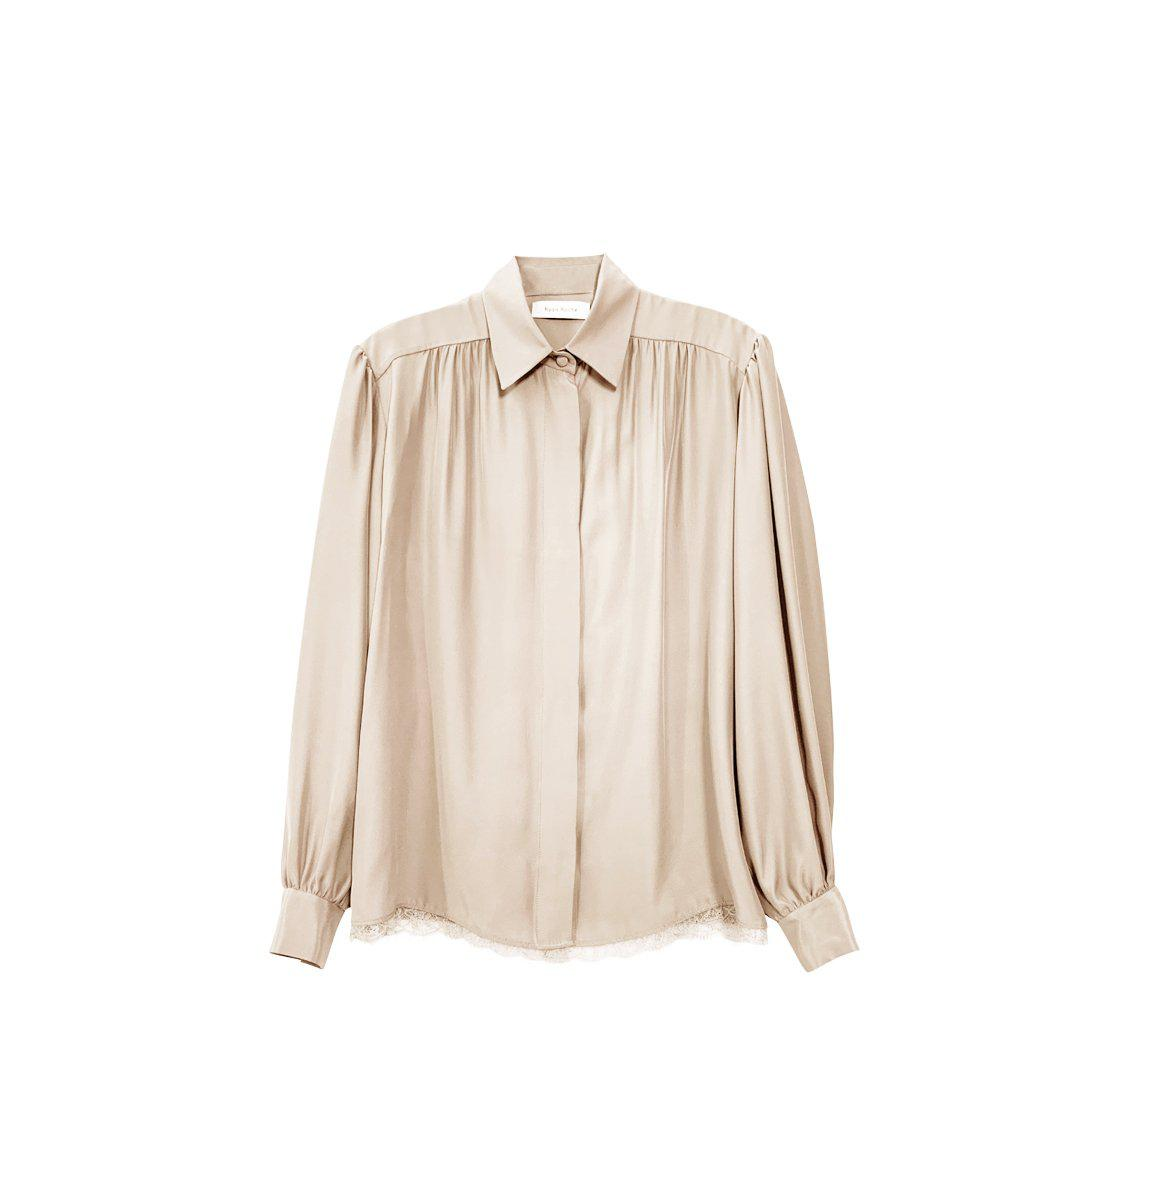 RYAN ROCHE SILK CHARMEUSE SHIRT WITH PUFF SHOULDERS AND LACE TRIM